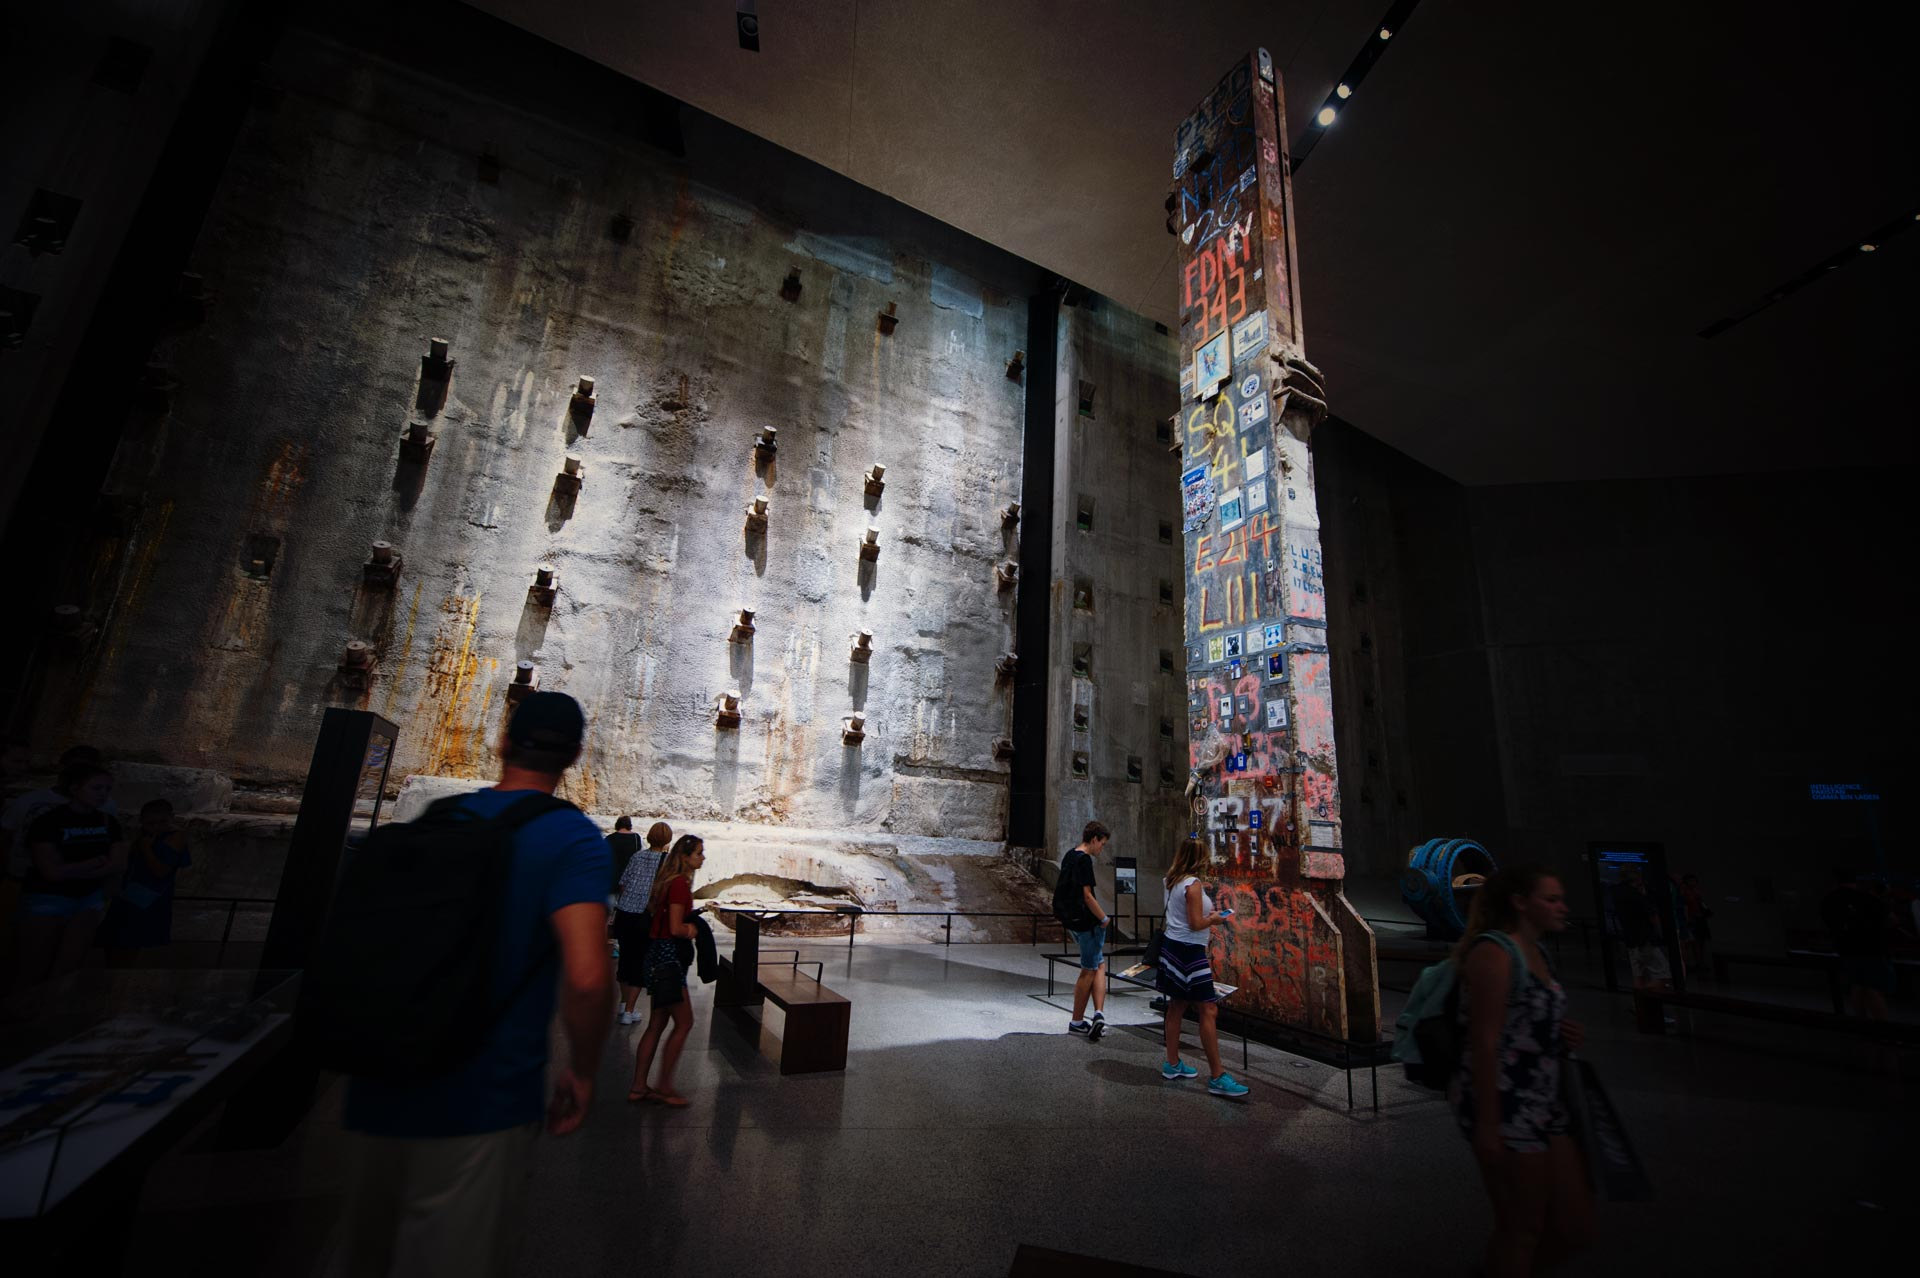 The Last Column and the Slurry Wall of the World Trade Center in Foundation Hall of the National September 11 Memorial Museum.